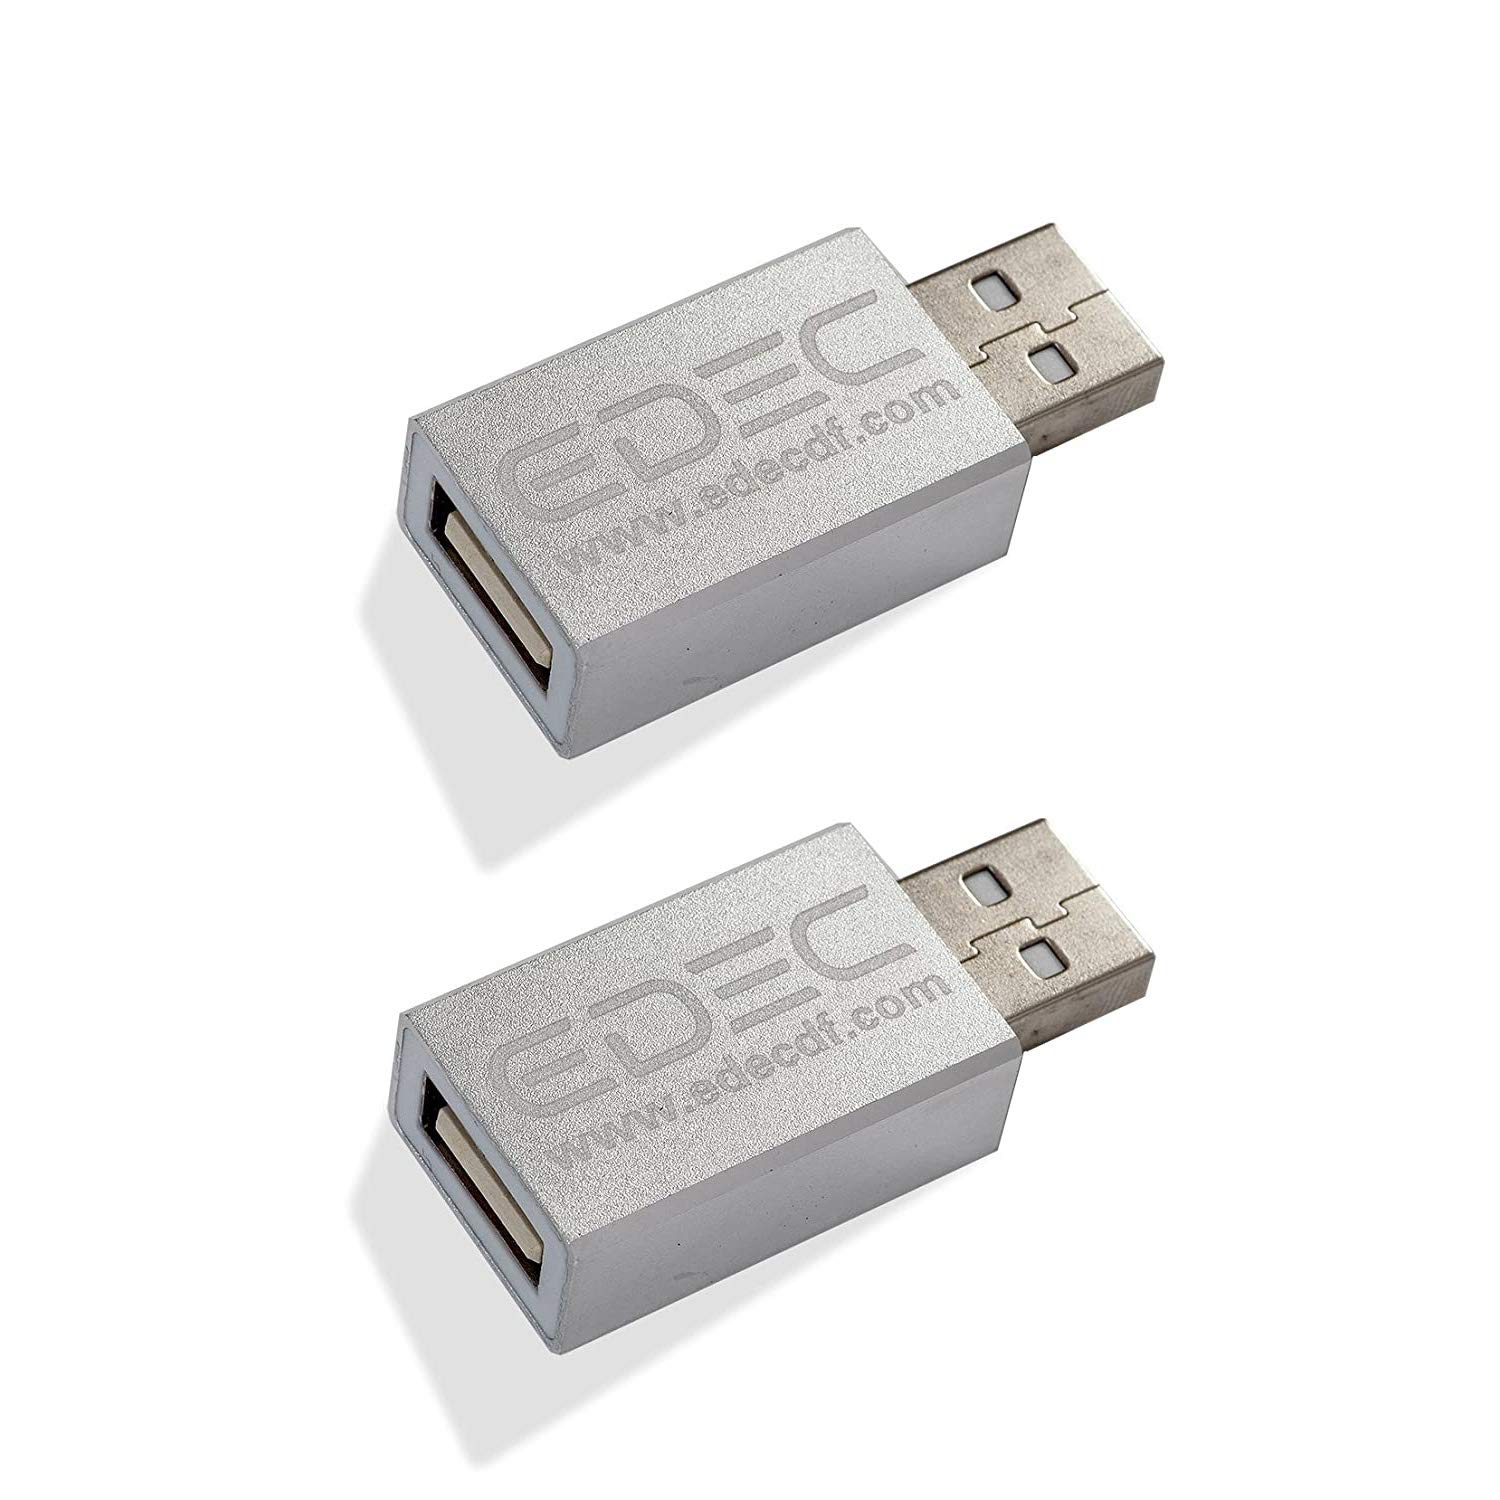 USB Data Blocker (2 Pack) for Cell Phone, Tablet, and Laptop, Block Unwanted Data Transfer, Protect Against Juice Jacking, Safely Charge iPhone, Android Devices